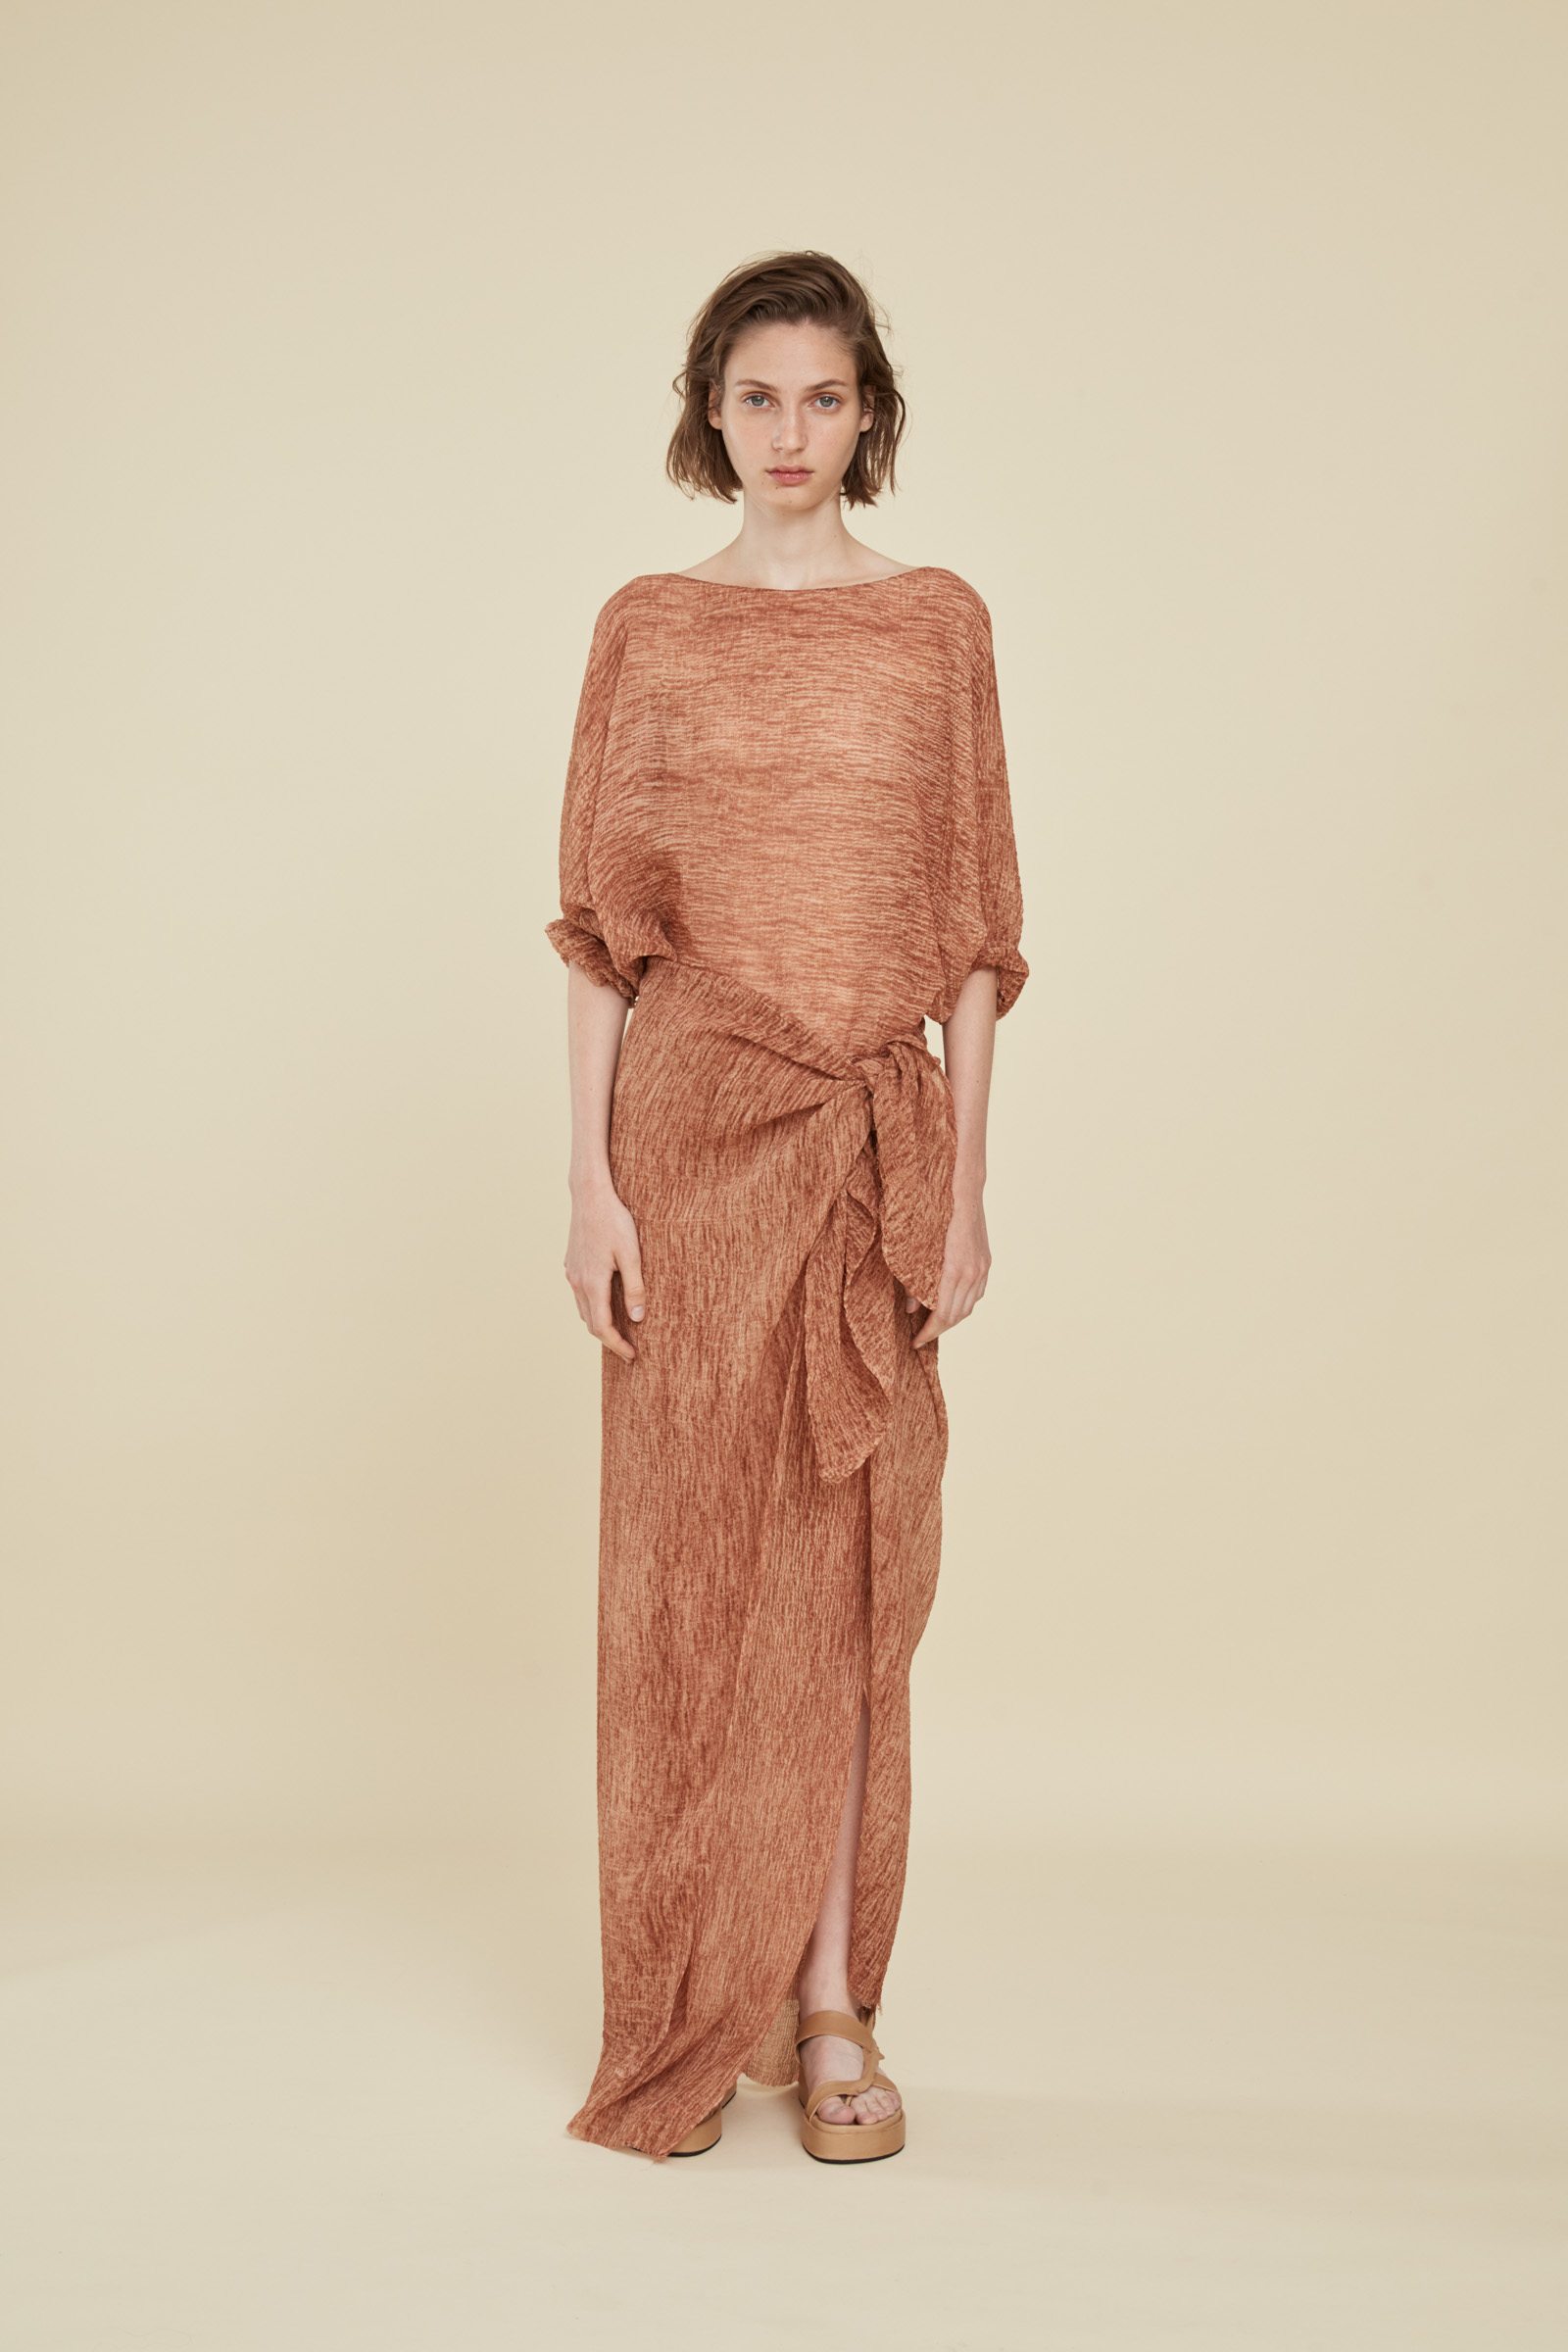 TERRA LONG HENNA DRESS, DRESSES collection – Cortana Moda